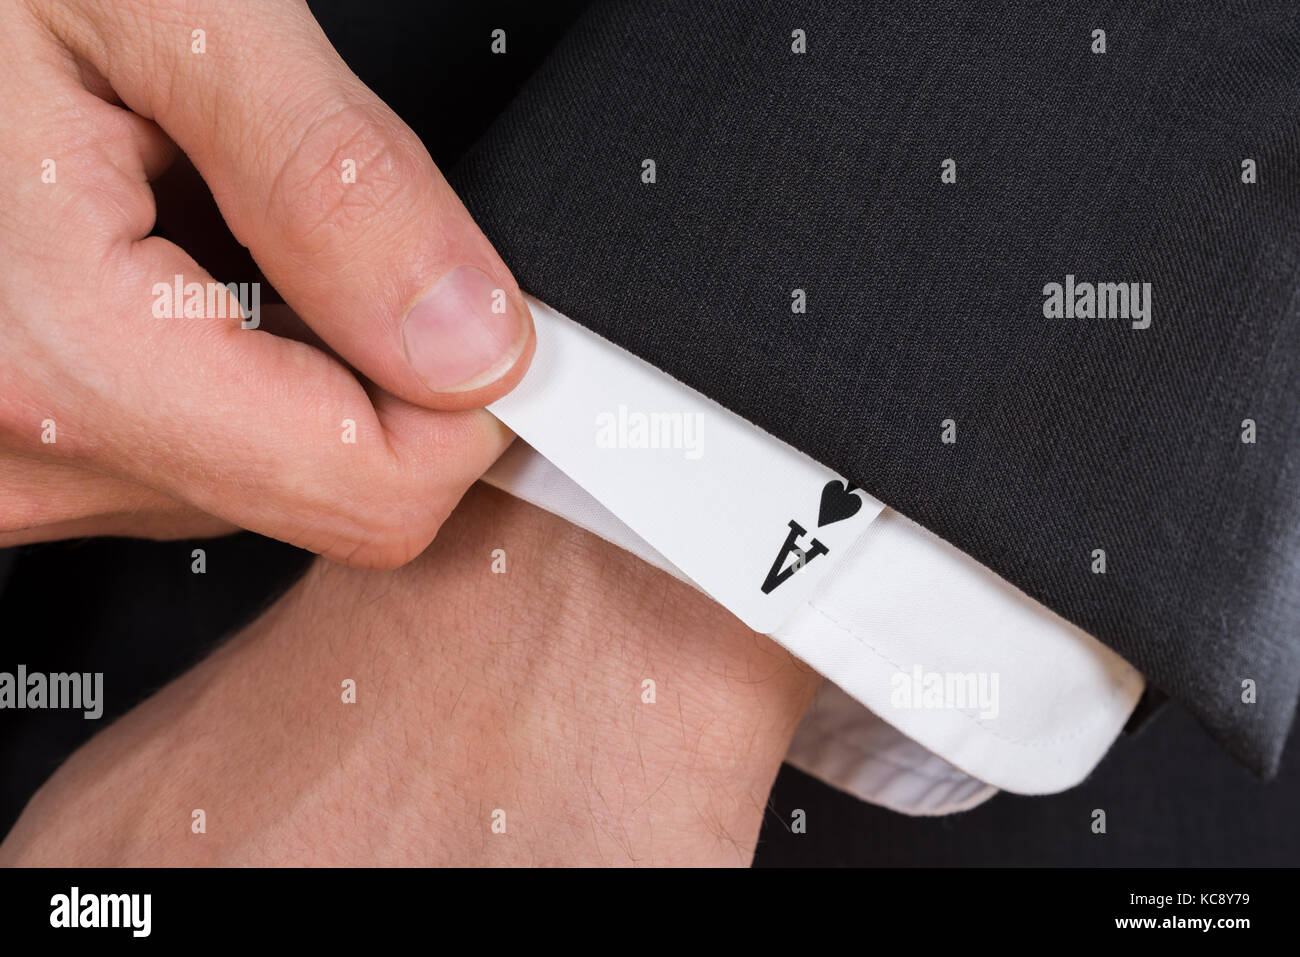 Business card trick executive stock photos business card trick close up of businessman hand removing ace card from sleeve stock image colourmoves